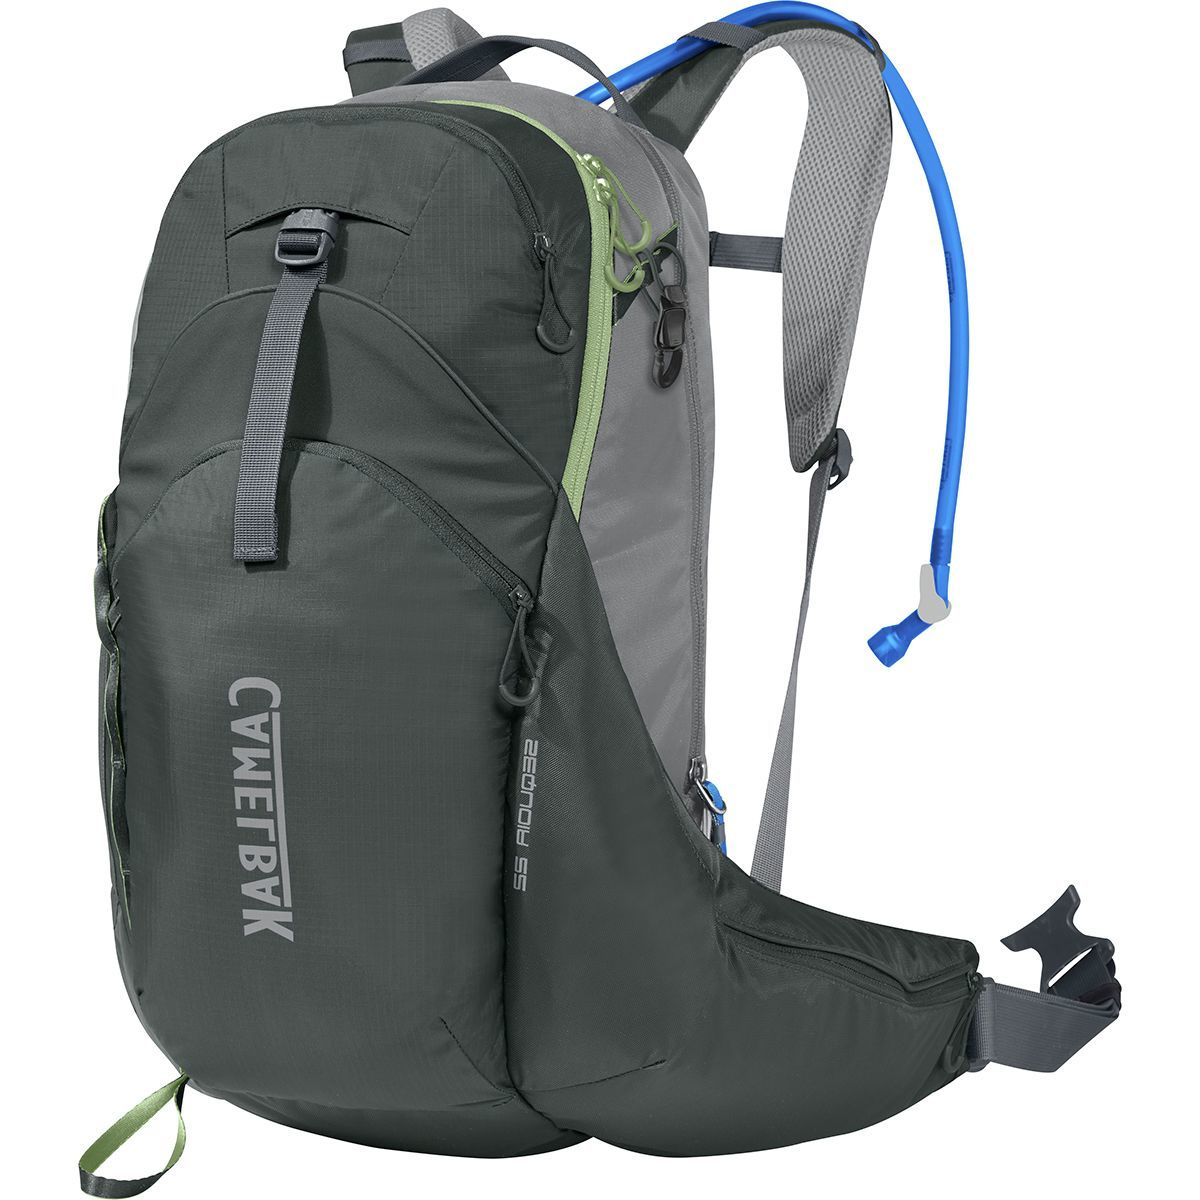 CamelBak Sequoia 22L Backpack - Women's